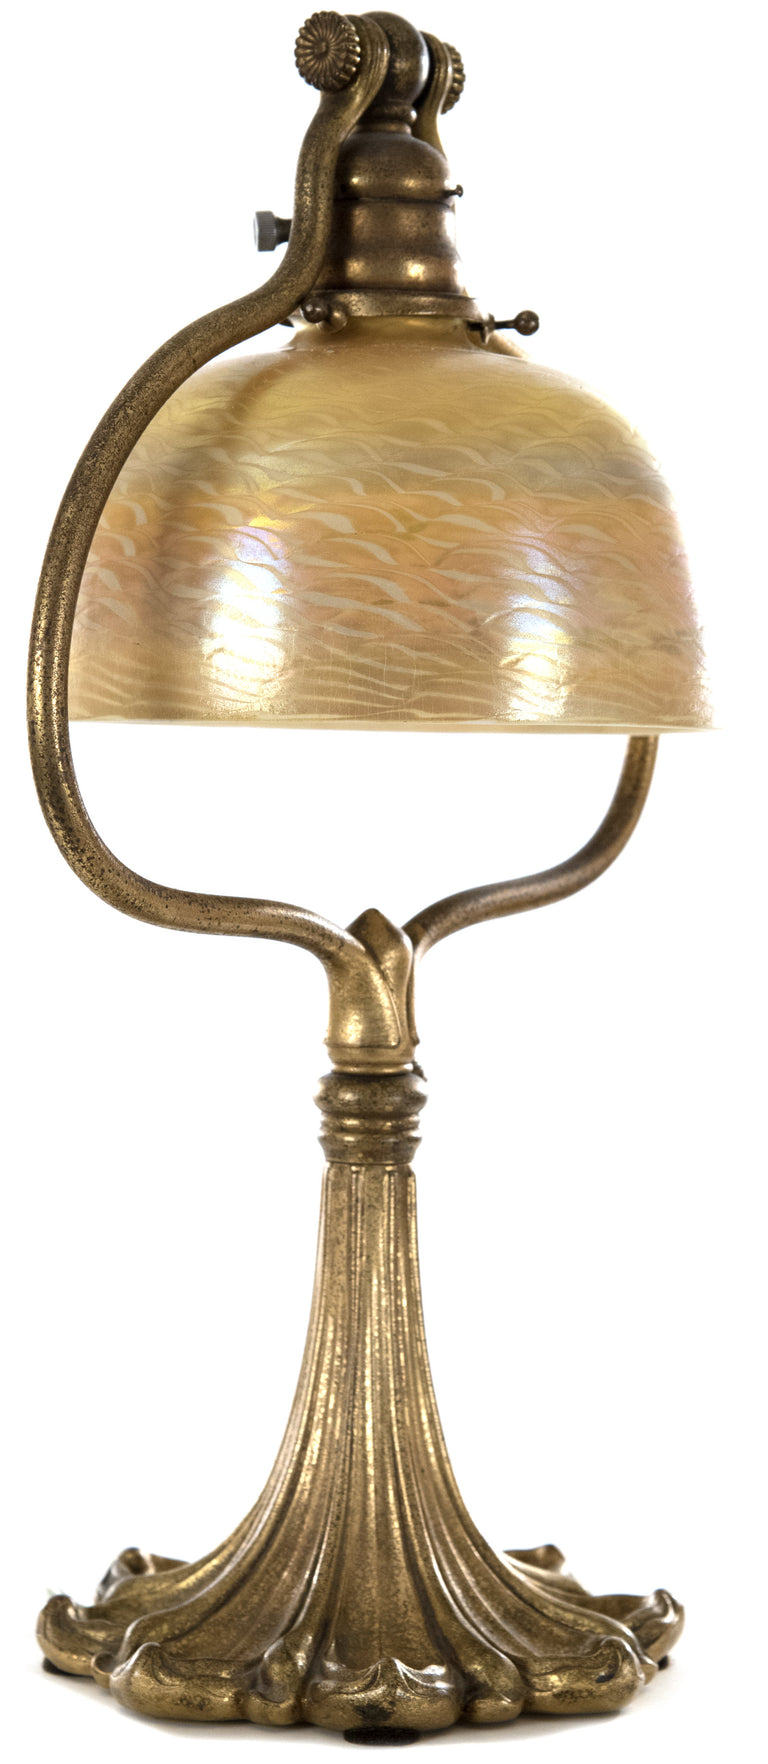 "Tiffany Studios, New York Favrile Glass and Bronze ""Harp"" Table Lamp"